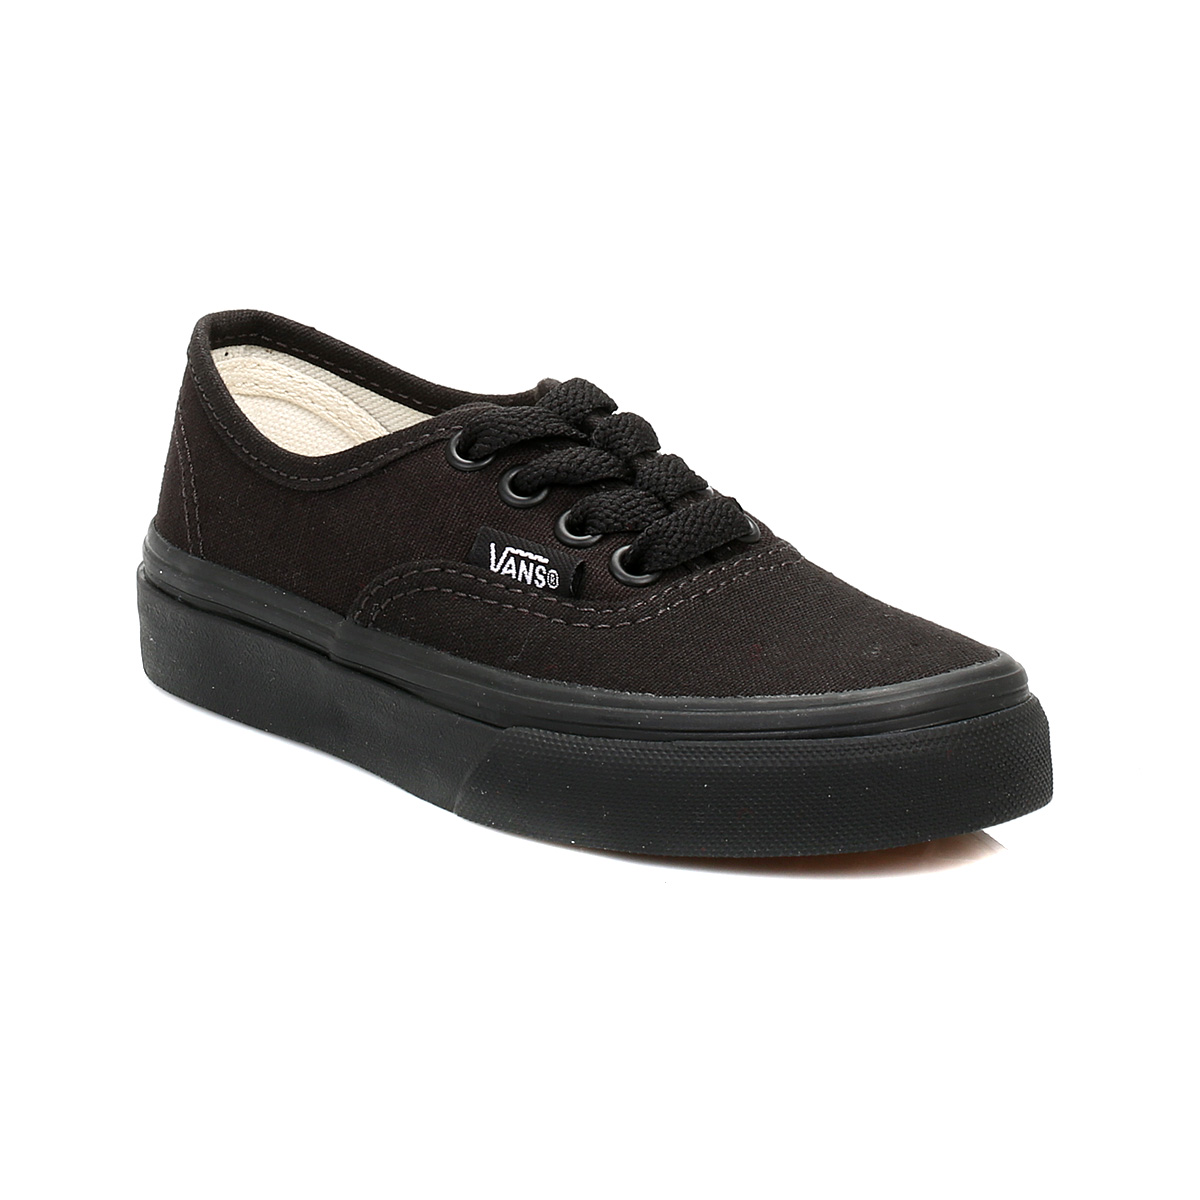 Find the latest styles from your favorite brands of girls' canvas sneakers and shoes for less at Famous Footwear! Find your fit today! Women. View All. New Arrivals. Athletic Shoes. Converse Kids' Chuck Taylor All Star Street Mid Top Sneaker Dark Burgundy/Black. $ Converse Kids' Chuck Taylor All Star High Top Sneaker Pure.